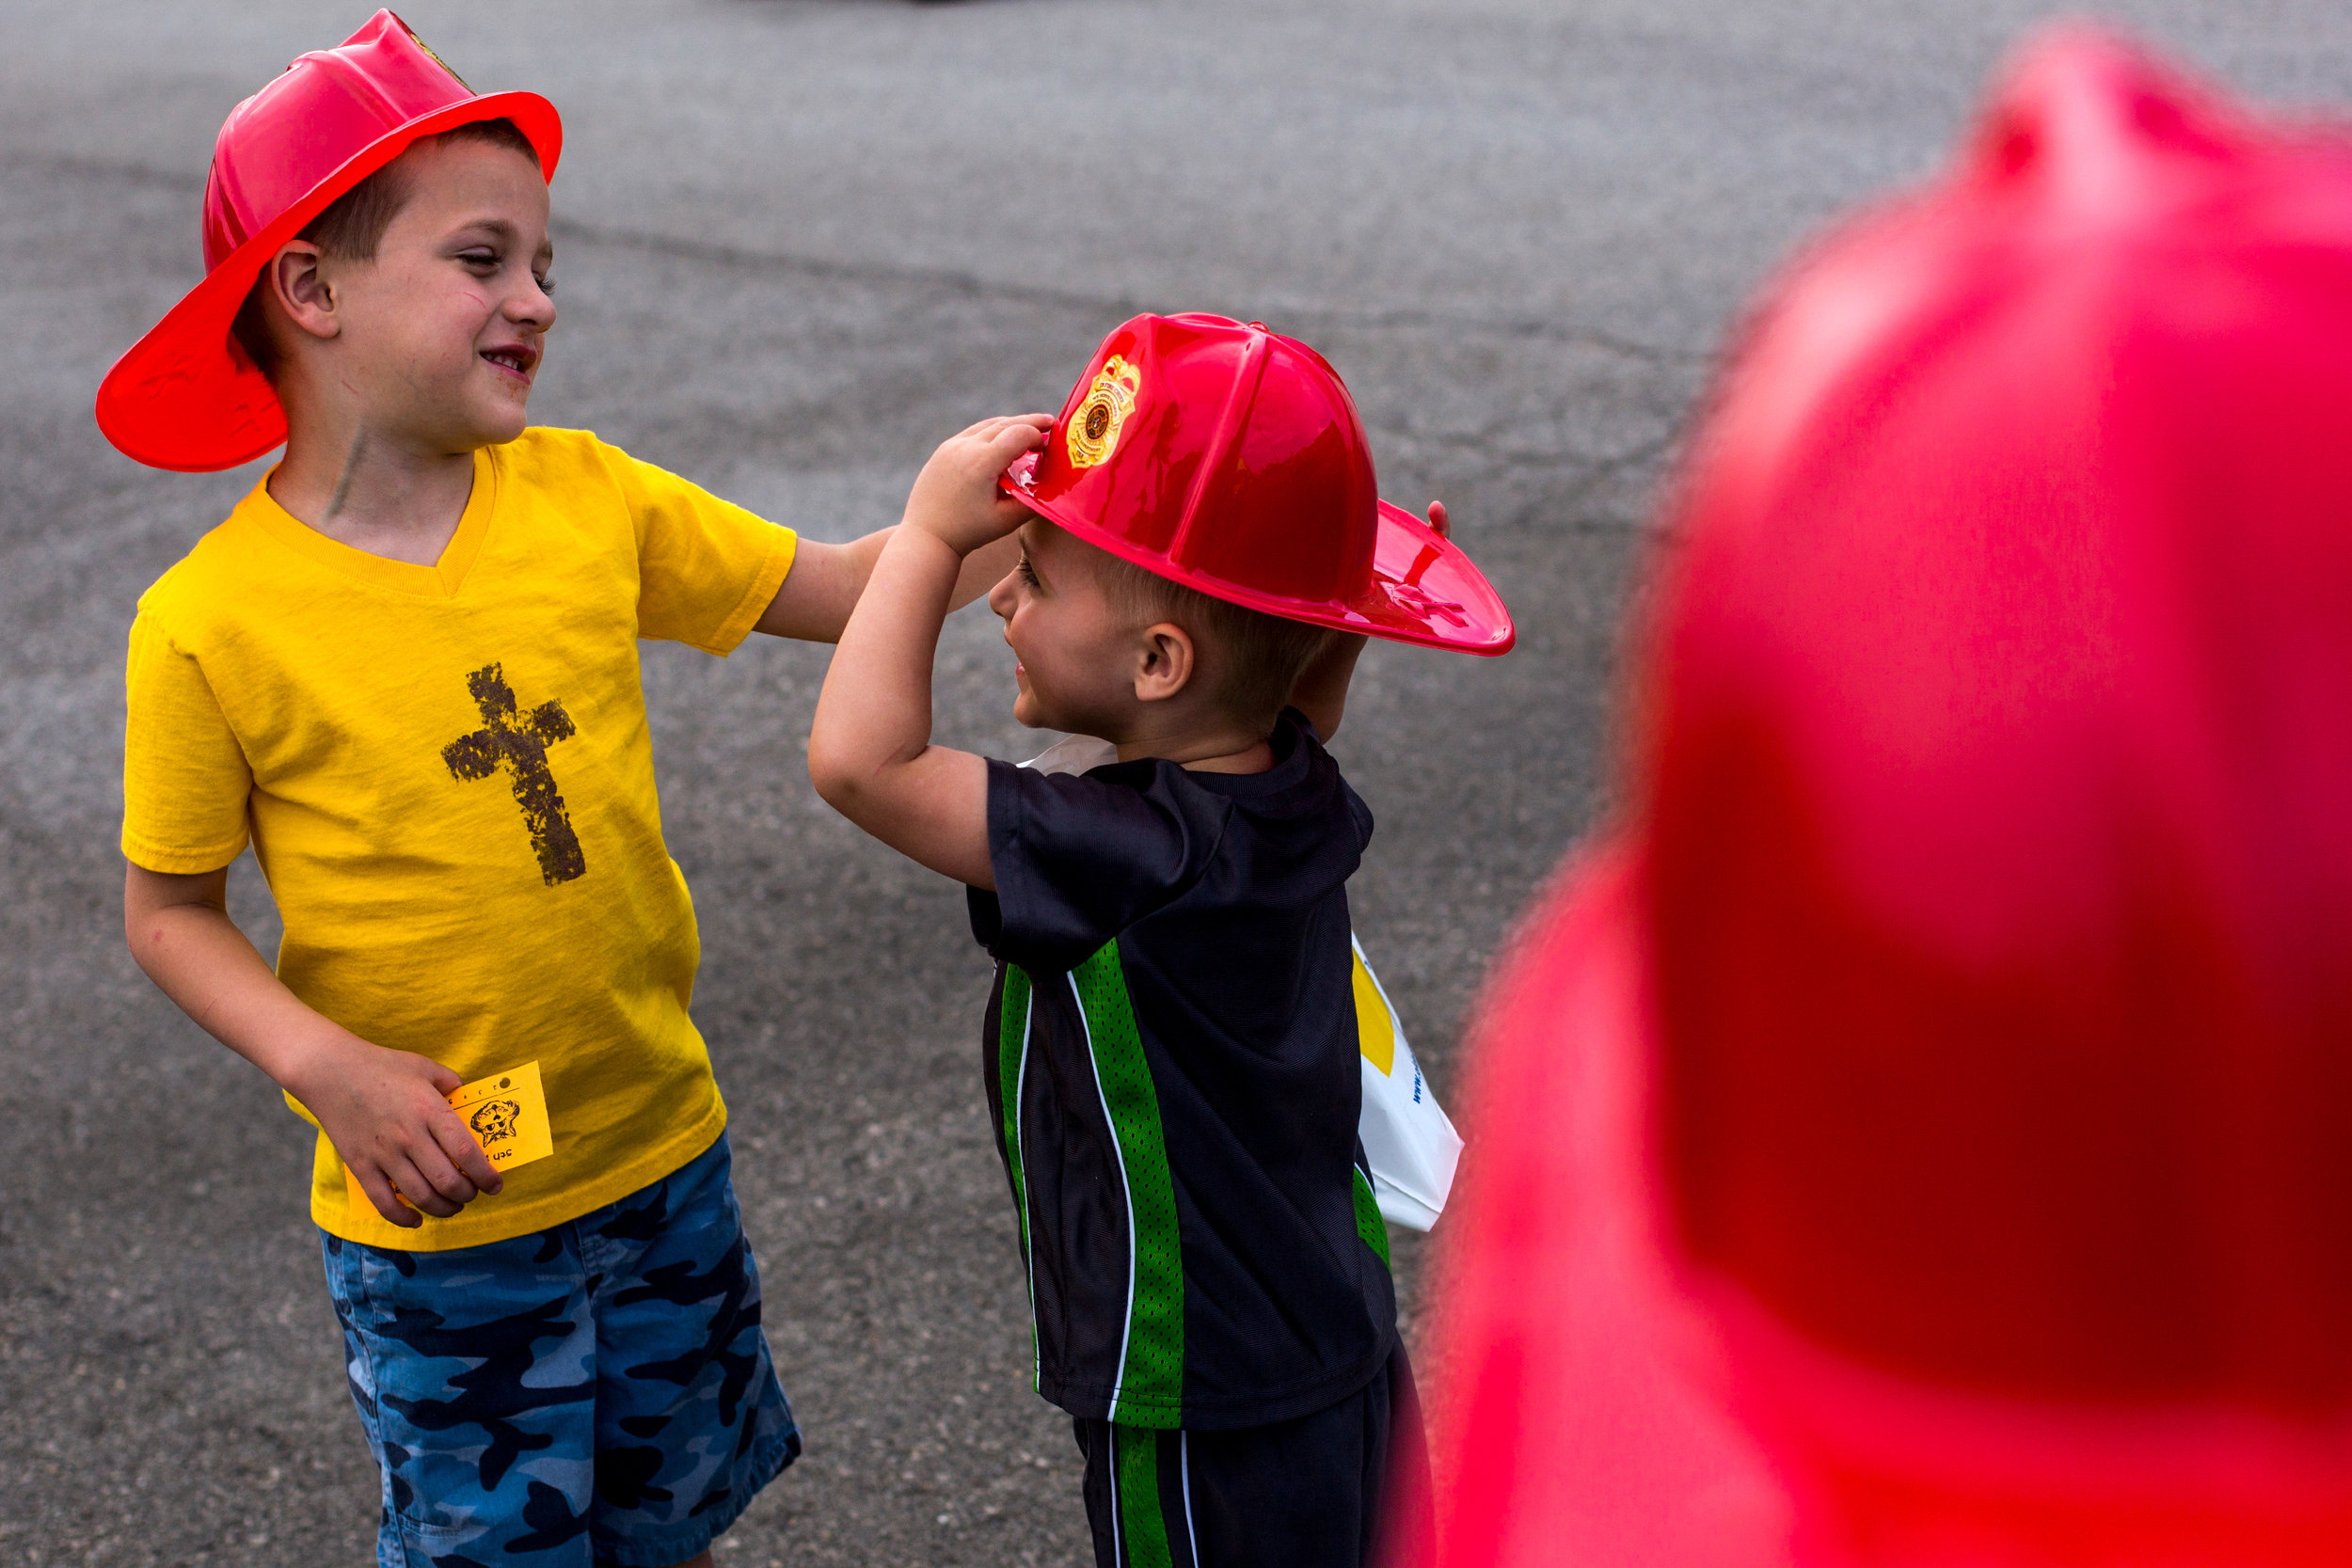 Grant Gehlhausen of Ireland, 8, watched his younger brother, Cash, 4, left, help Max, 2, adjust the hat he received from the Jasper Volunteer Fire Department during the Fifth Street School Community Health Fair on Thursday in Jasper. More than 30 vendors set up at Fifth Street to promote healthy living with nutritious snacks and several activities for families to enjoy.